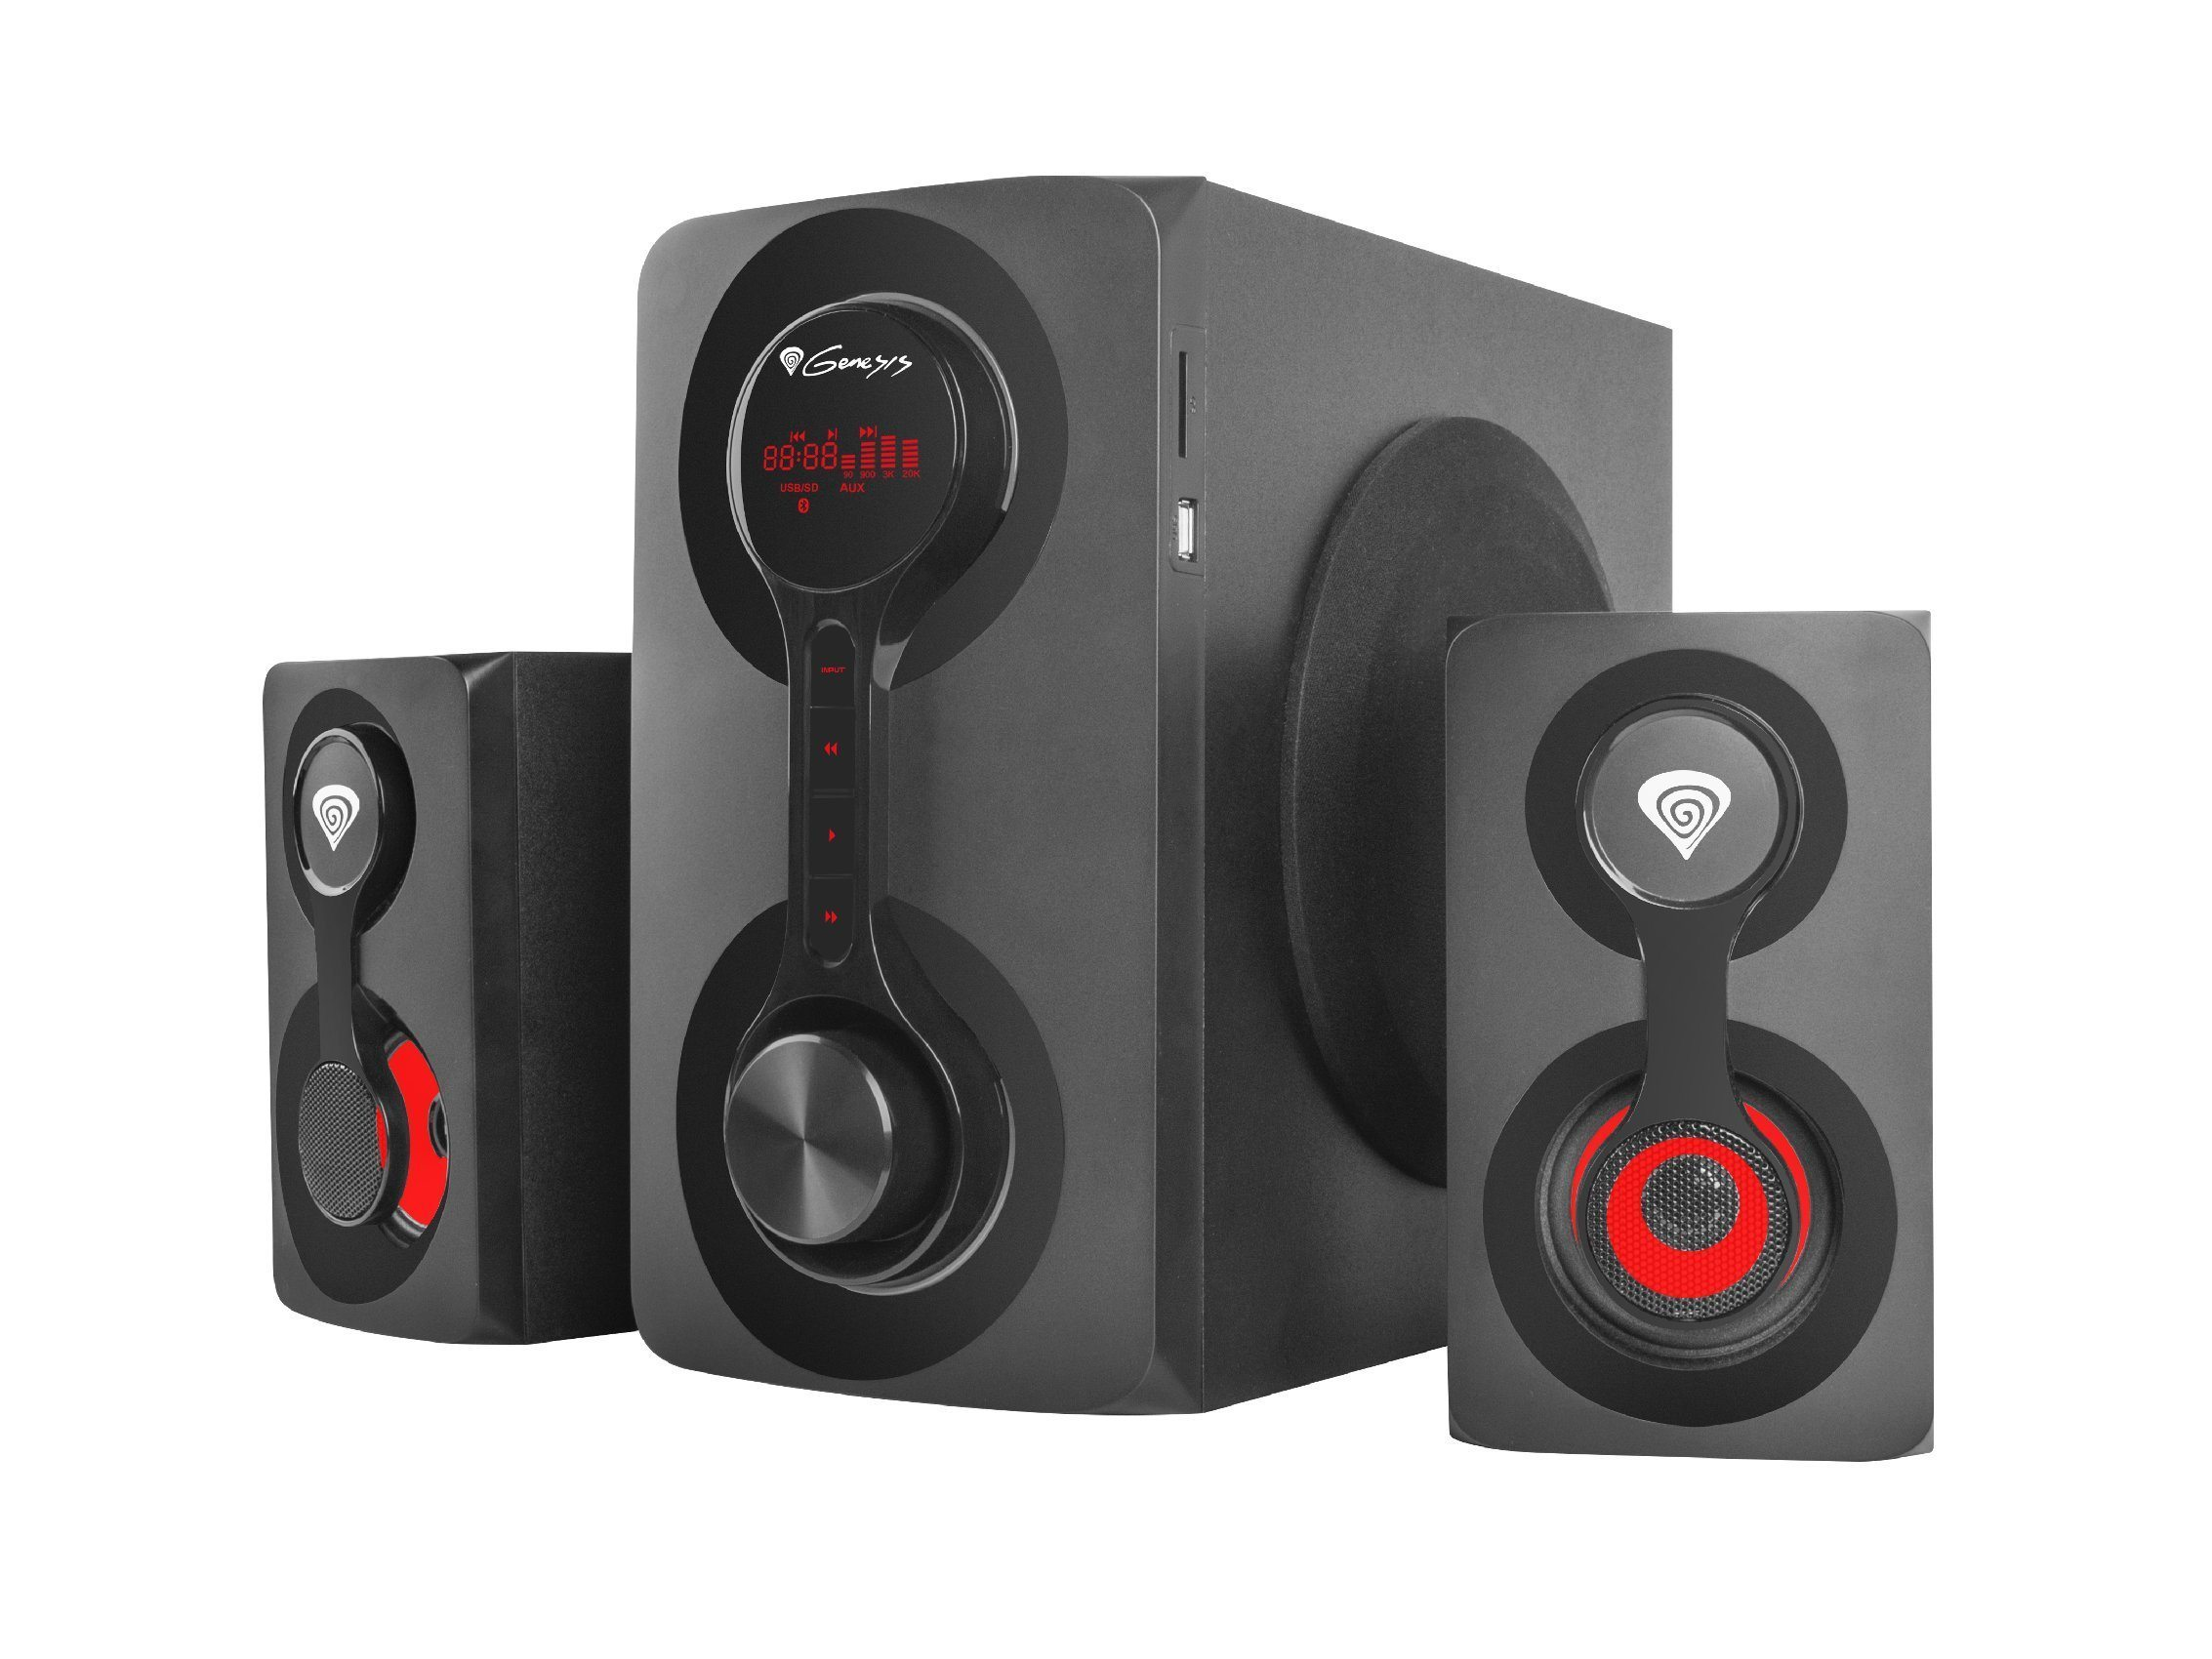 Speakers 2.1 - HELIUM 700BT - 60W RMS, Bluetooth 4.2, USB/SD card MP3 player, remote